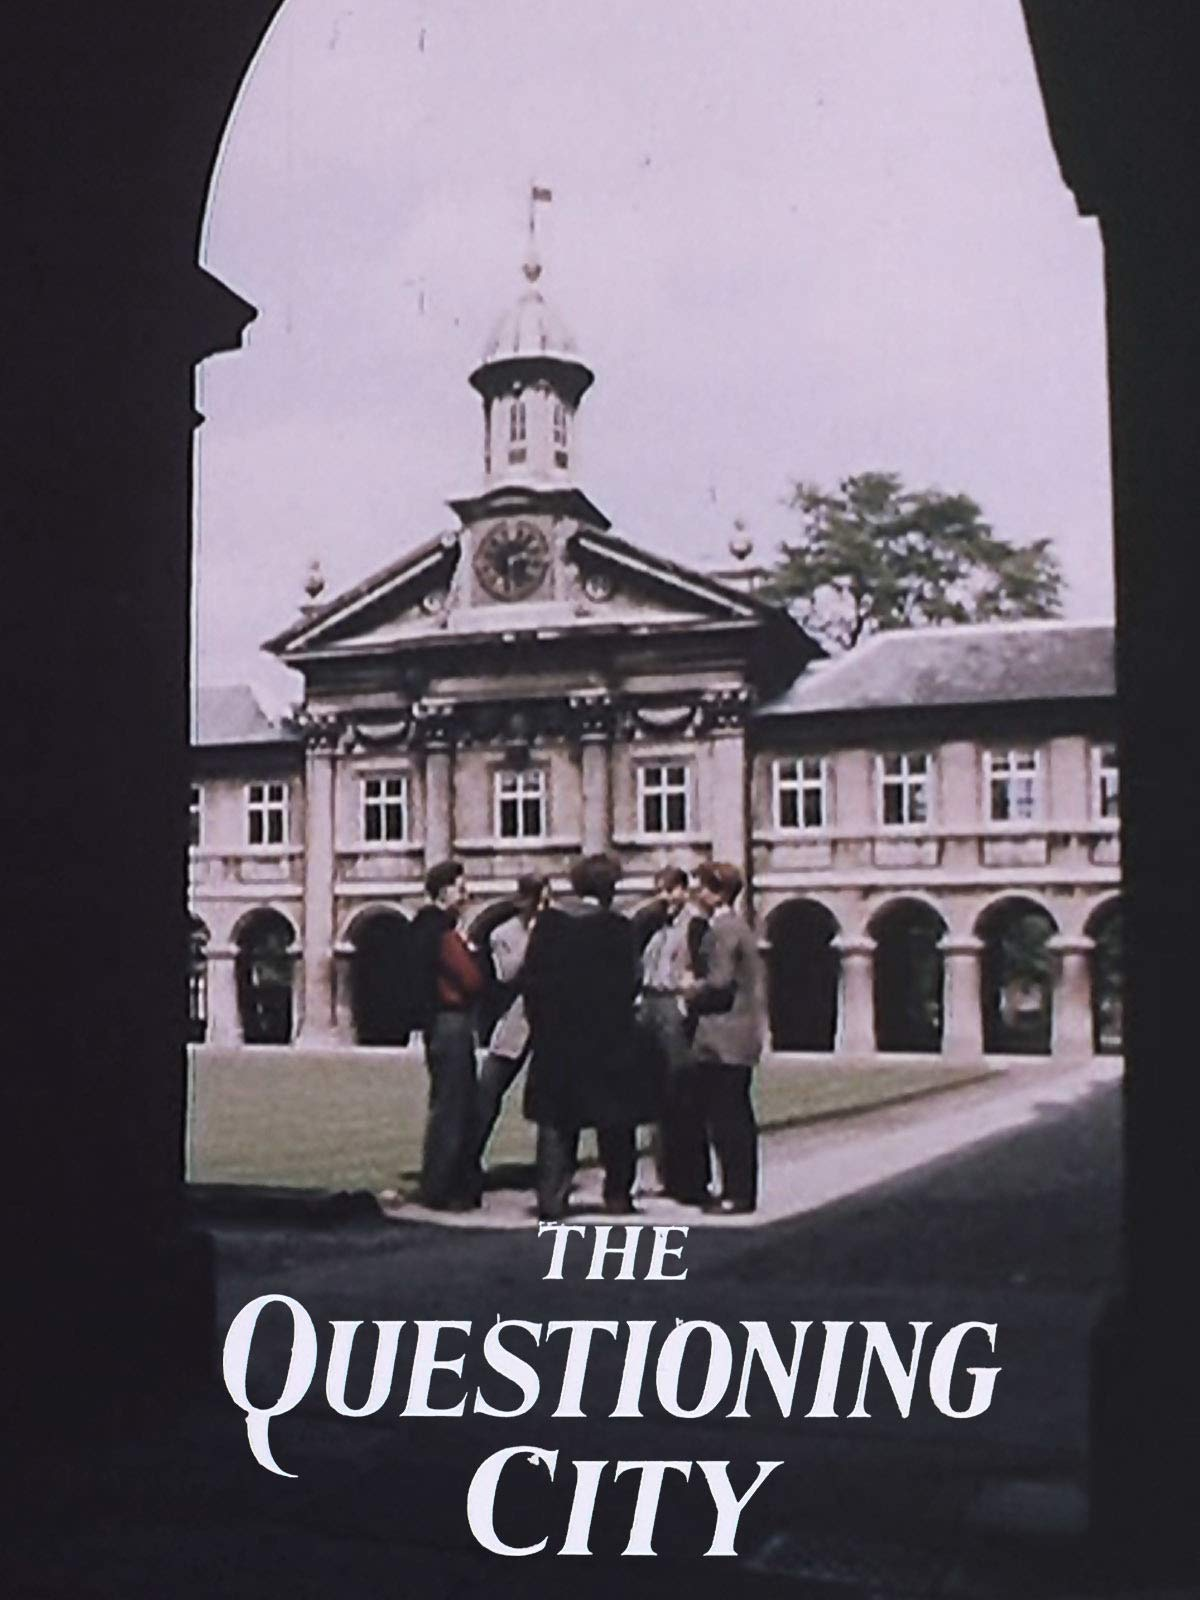 The Questioning City